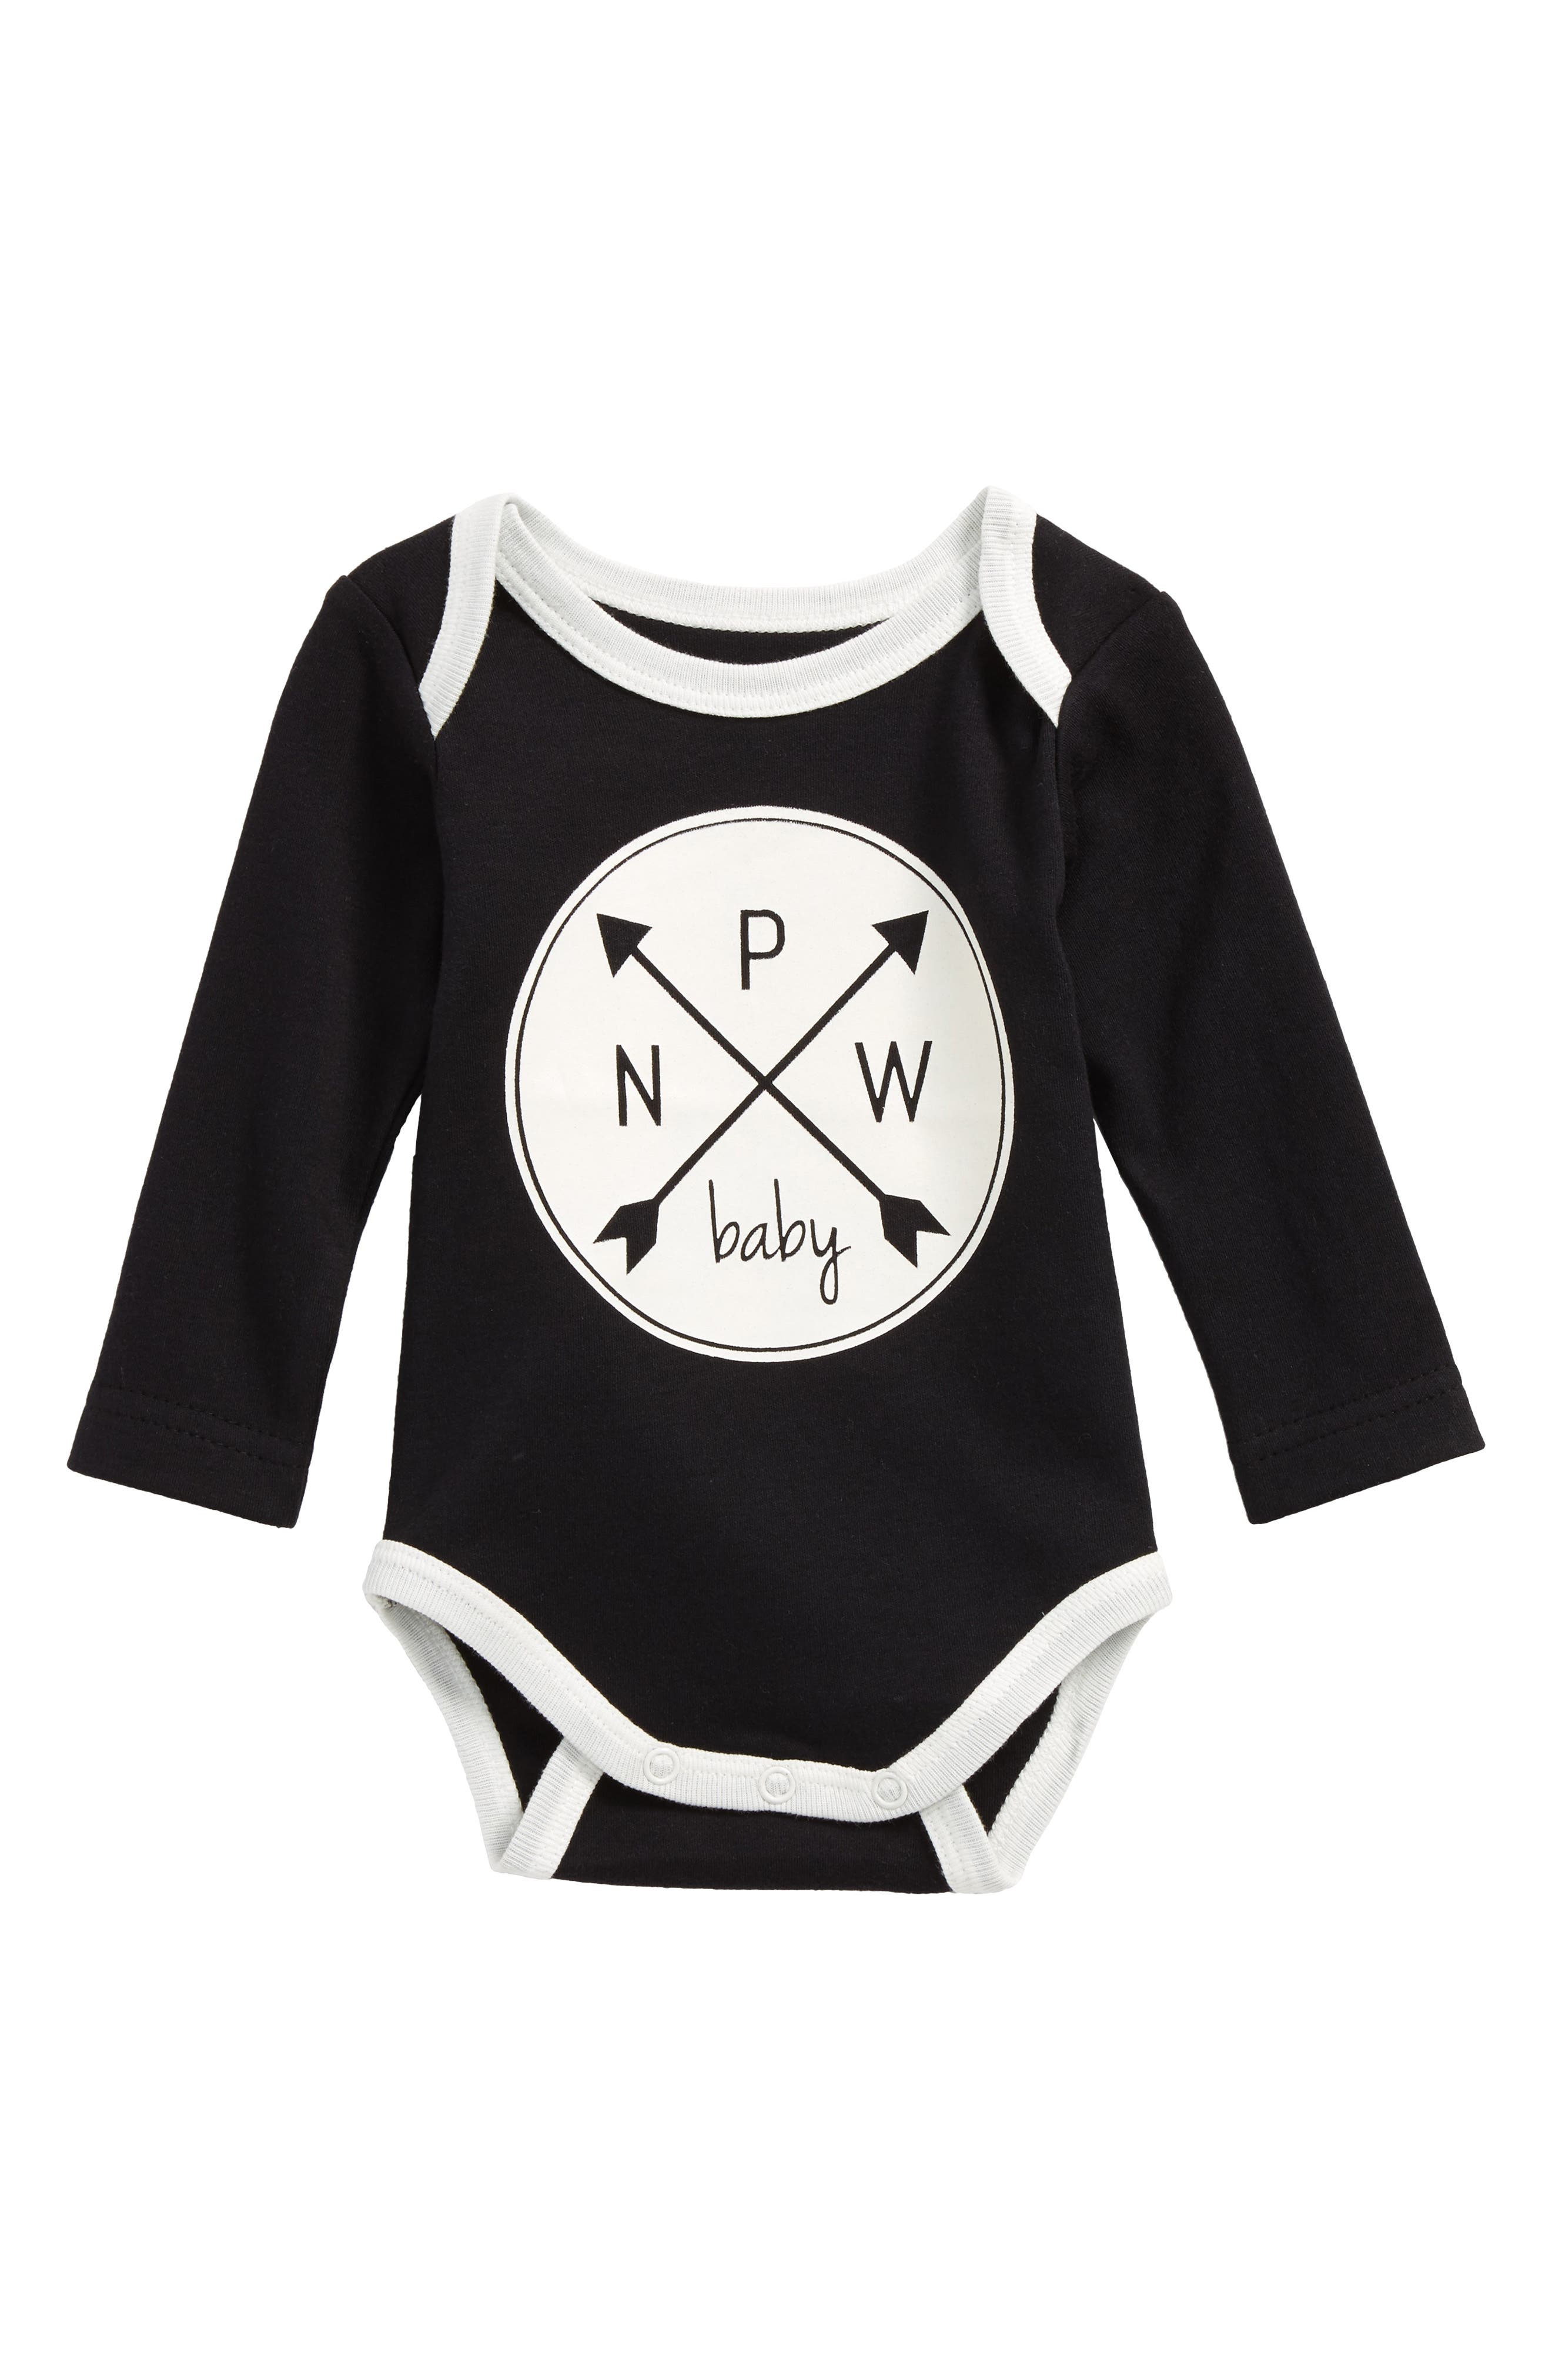 Alternate Image 1 Selected - City Mouse PNW Logo Graphic Organic Cotton Bodysuit (Baby)